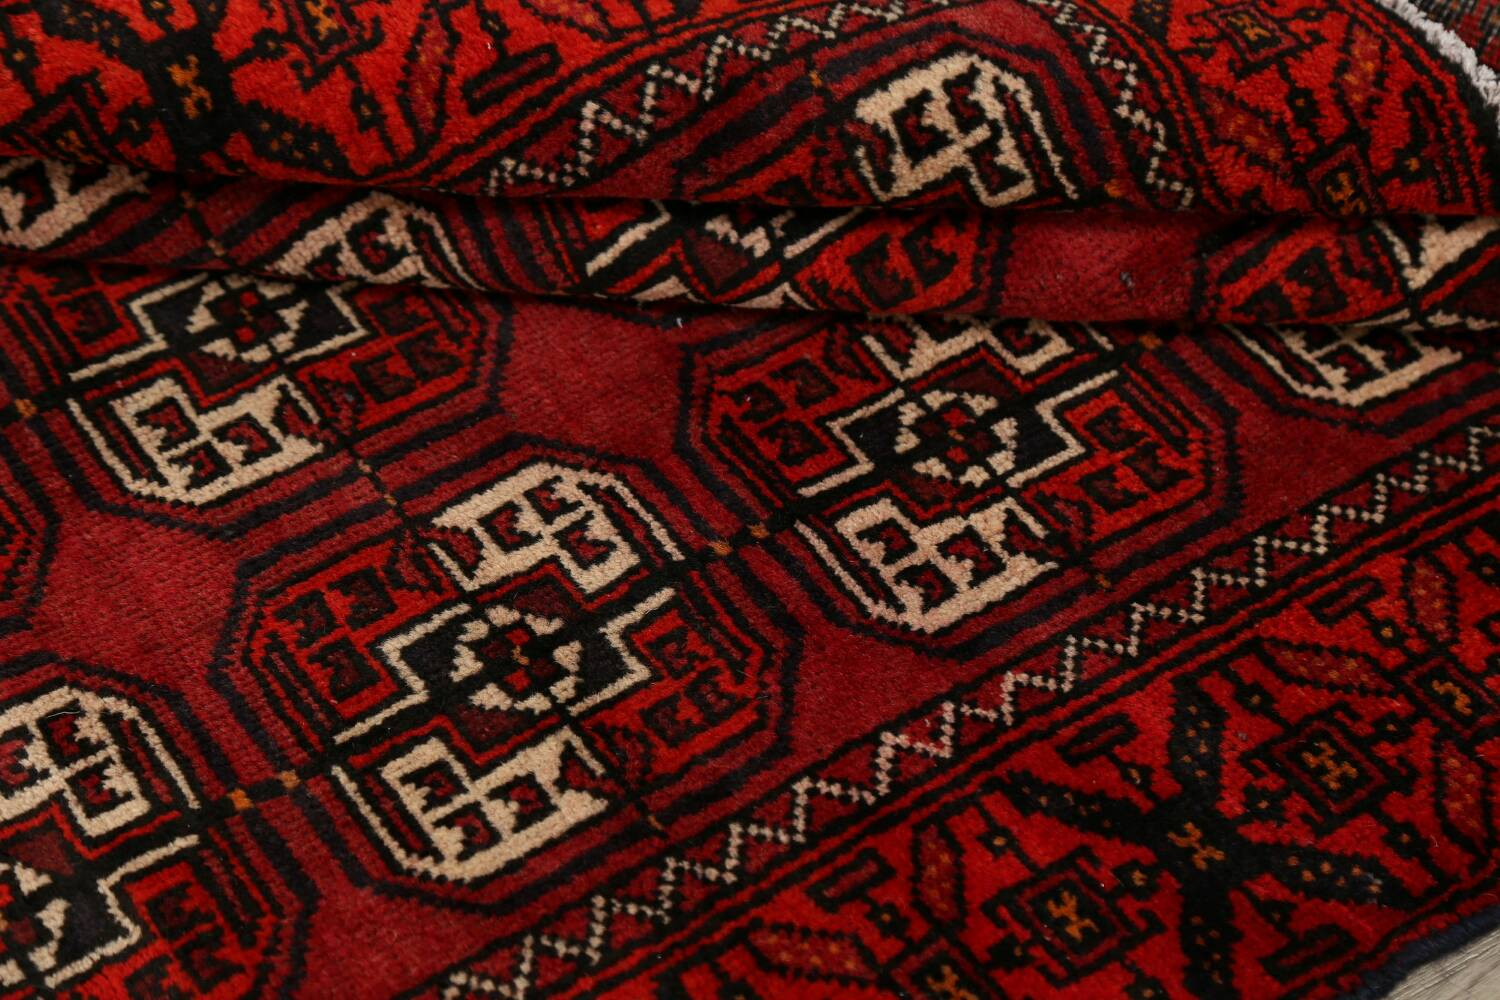 All-Over Red Geometric Balouch Persian Area Rug 3x6 image 17